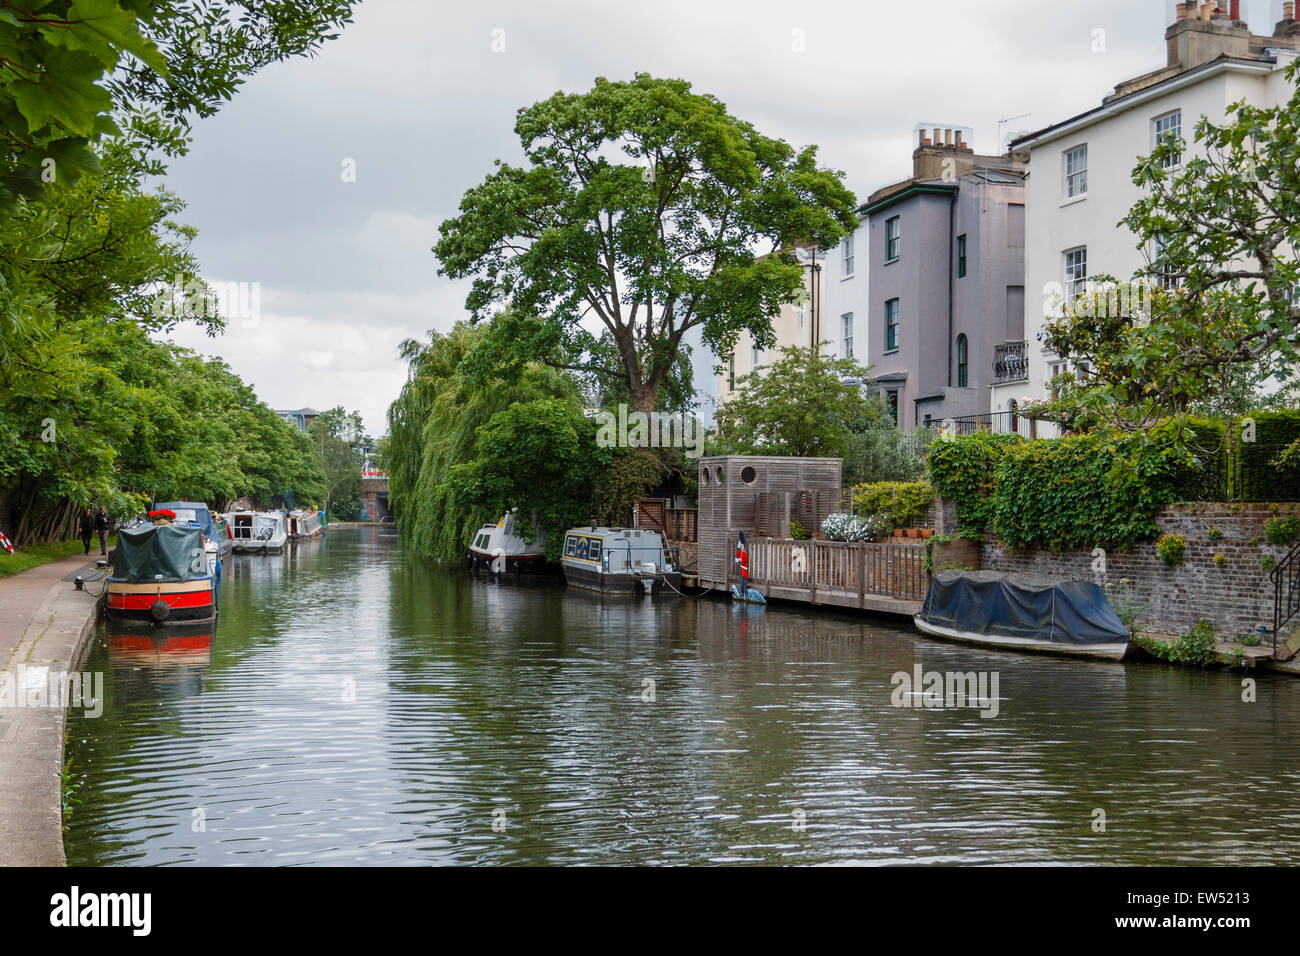 Canalside housing and boats on the Regents canal , London, England, UK Stock Photo